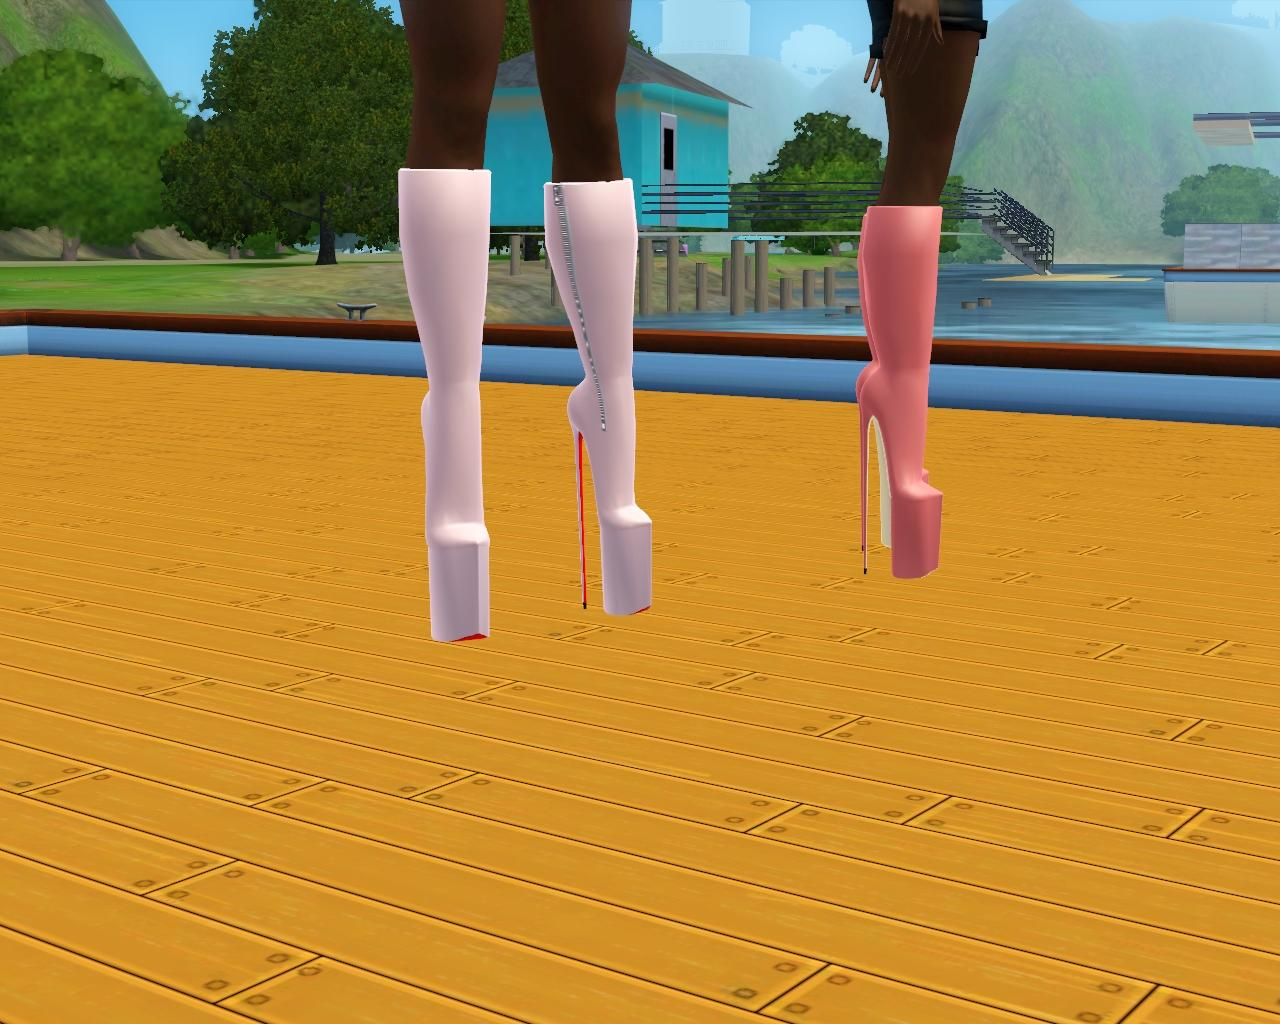 [REMESH] Impossible Boots Victoire Platforms by JoshQ